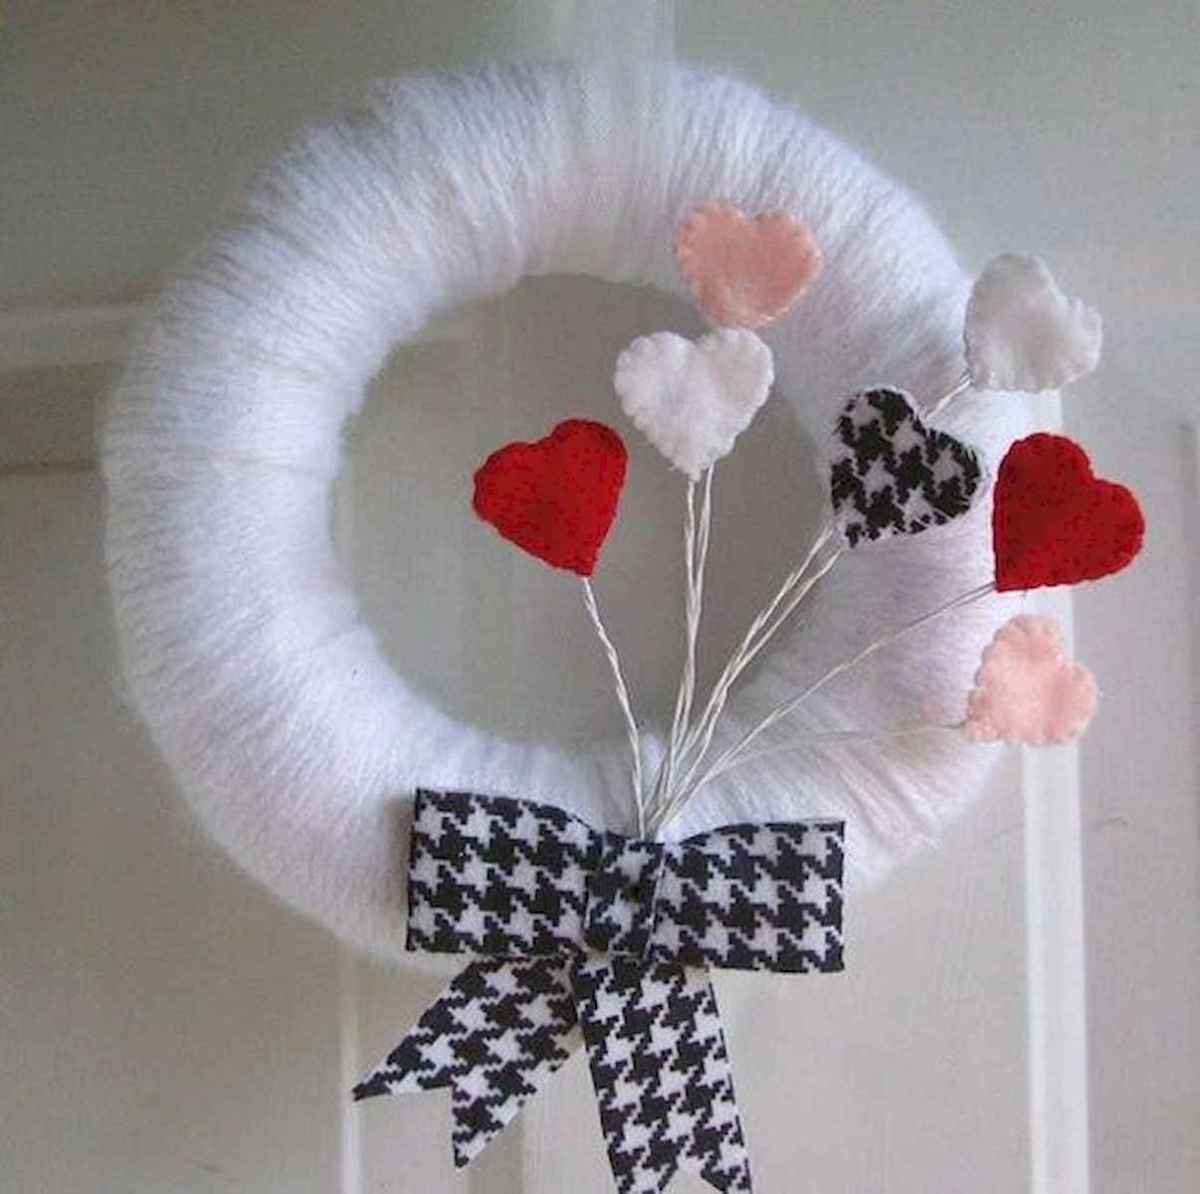 110 easy diy valentines decorations ideas and remodel (63)